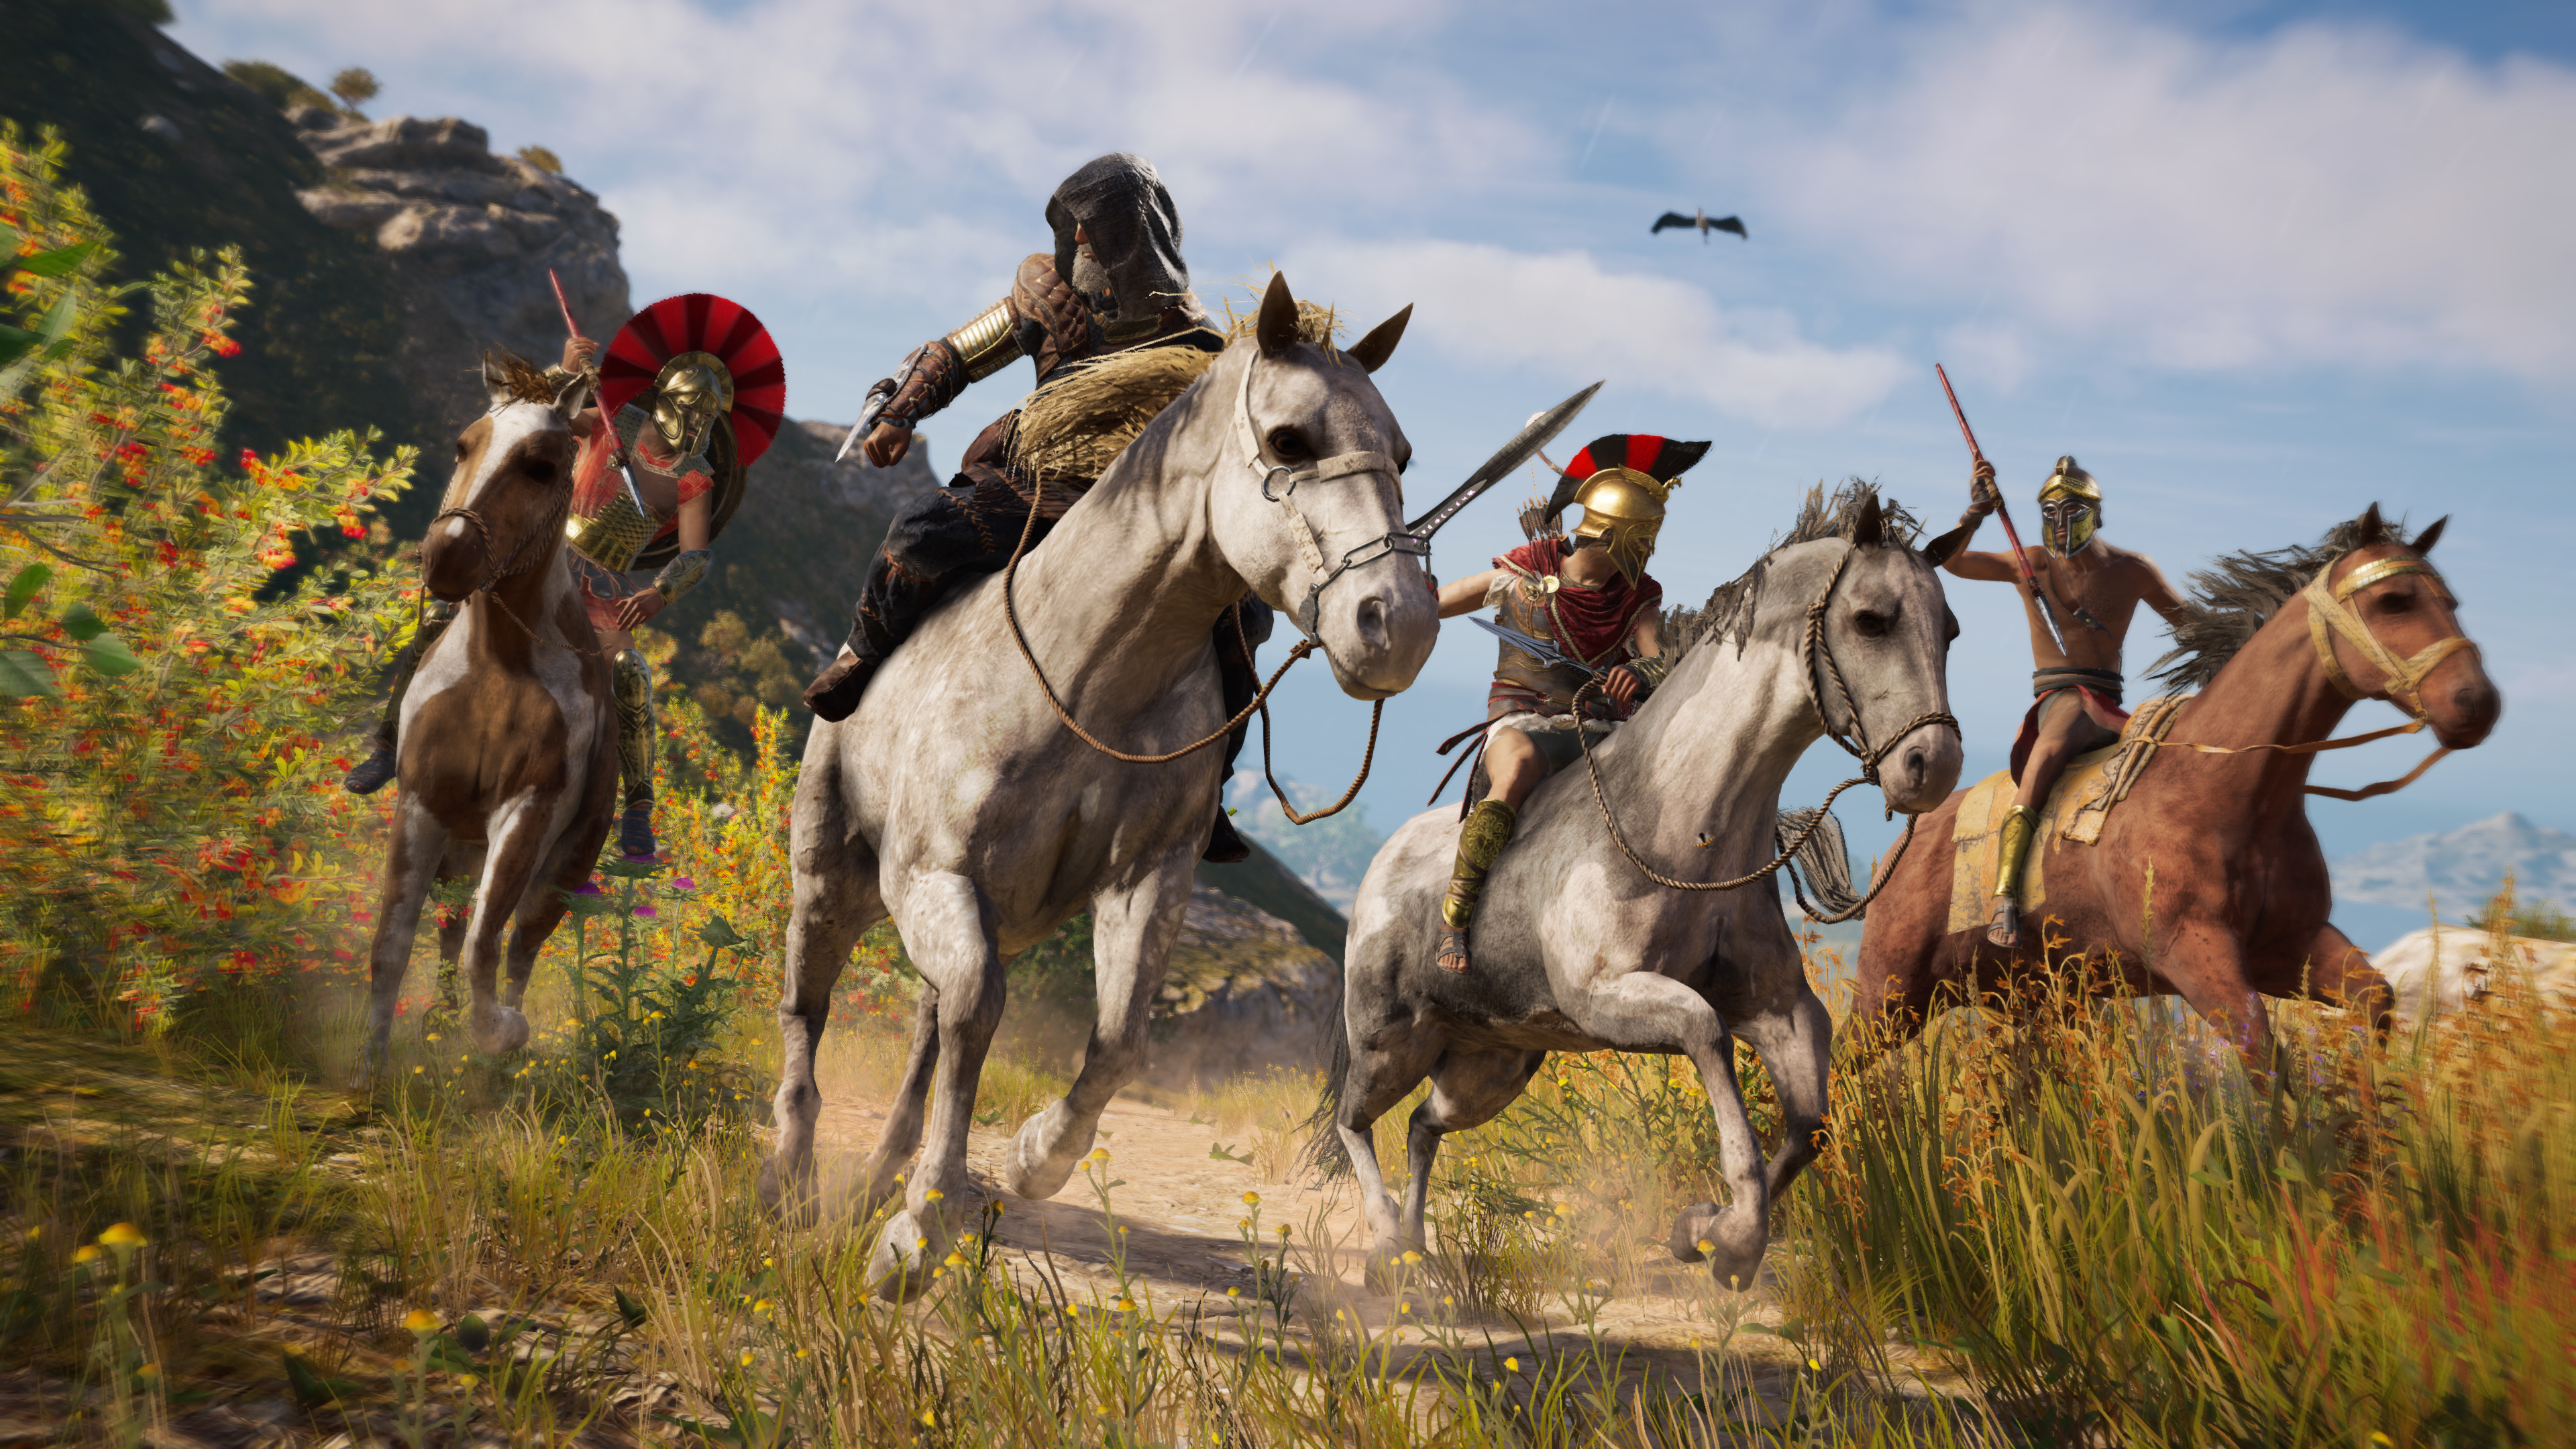 assassins creed odyssey 2019 4k 1548526899 - Assassins Creed Odyssey 2019 4k - hd-wallpapers, games wallpapers, assassins creed wallpapers, assassins creed odyssey wallpapers, 4k-wallpapers, 2019 games wallpapers